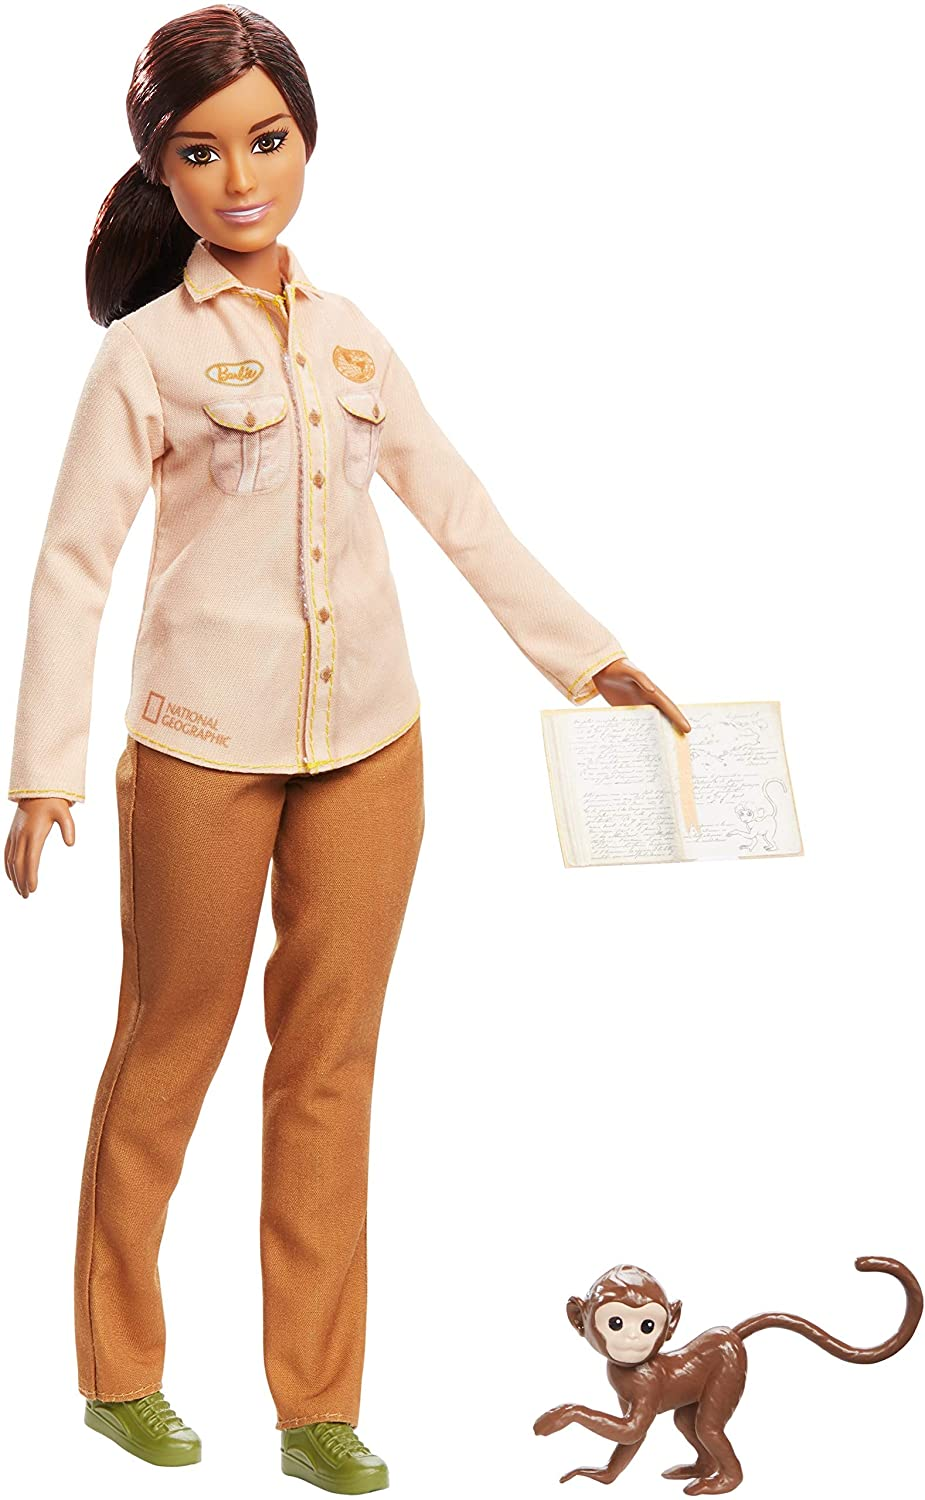 Barbie Wildlife Conservationist Doll, Brunette with Monkey and Notebook, Inspired by National Geographic for Kids 3 Years to 7 Years Old